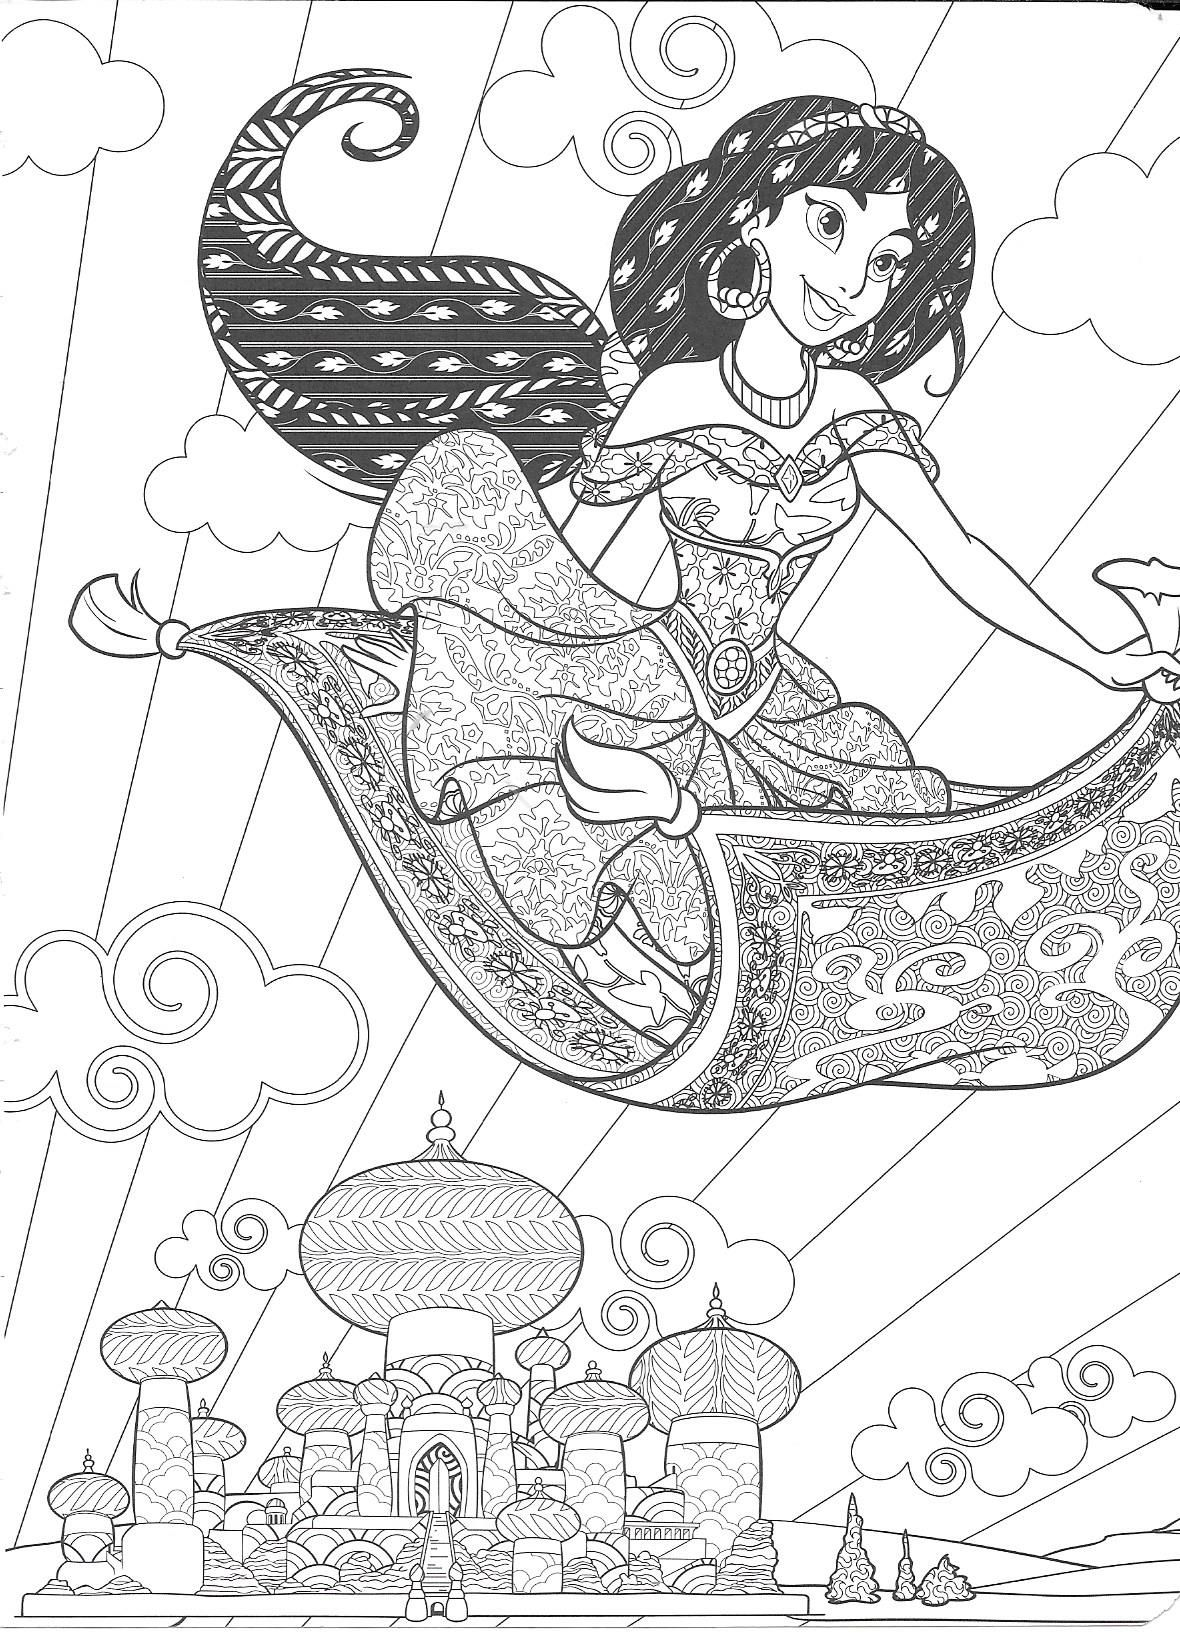 Jasmine Colouring Page Disney Coloring Pages Disney Coloring Sheets Disney Princess Coloring Pages